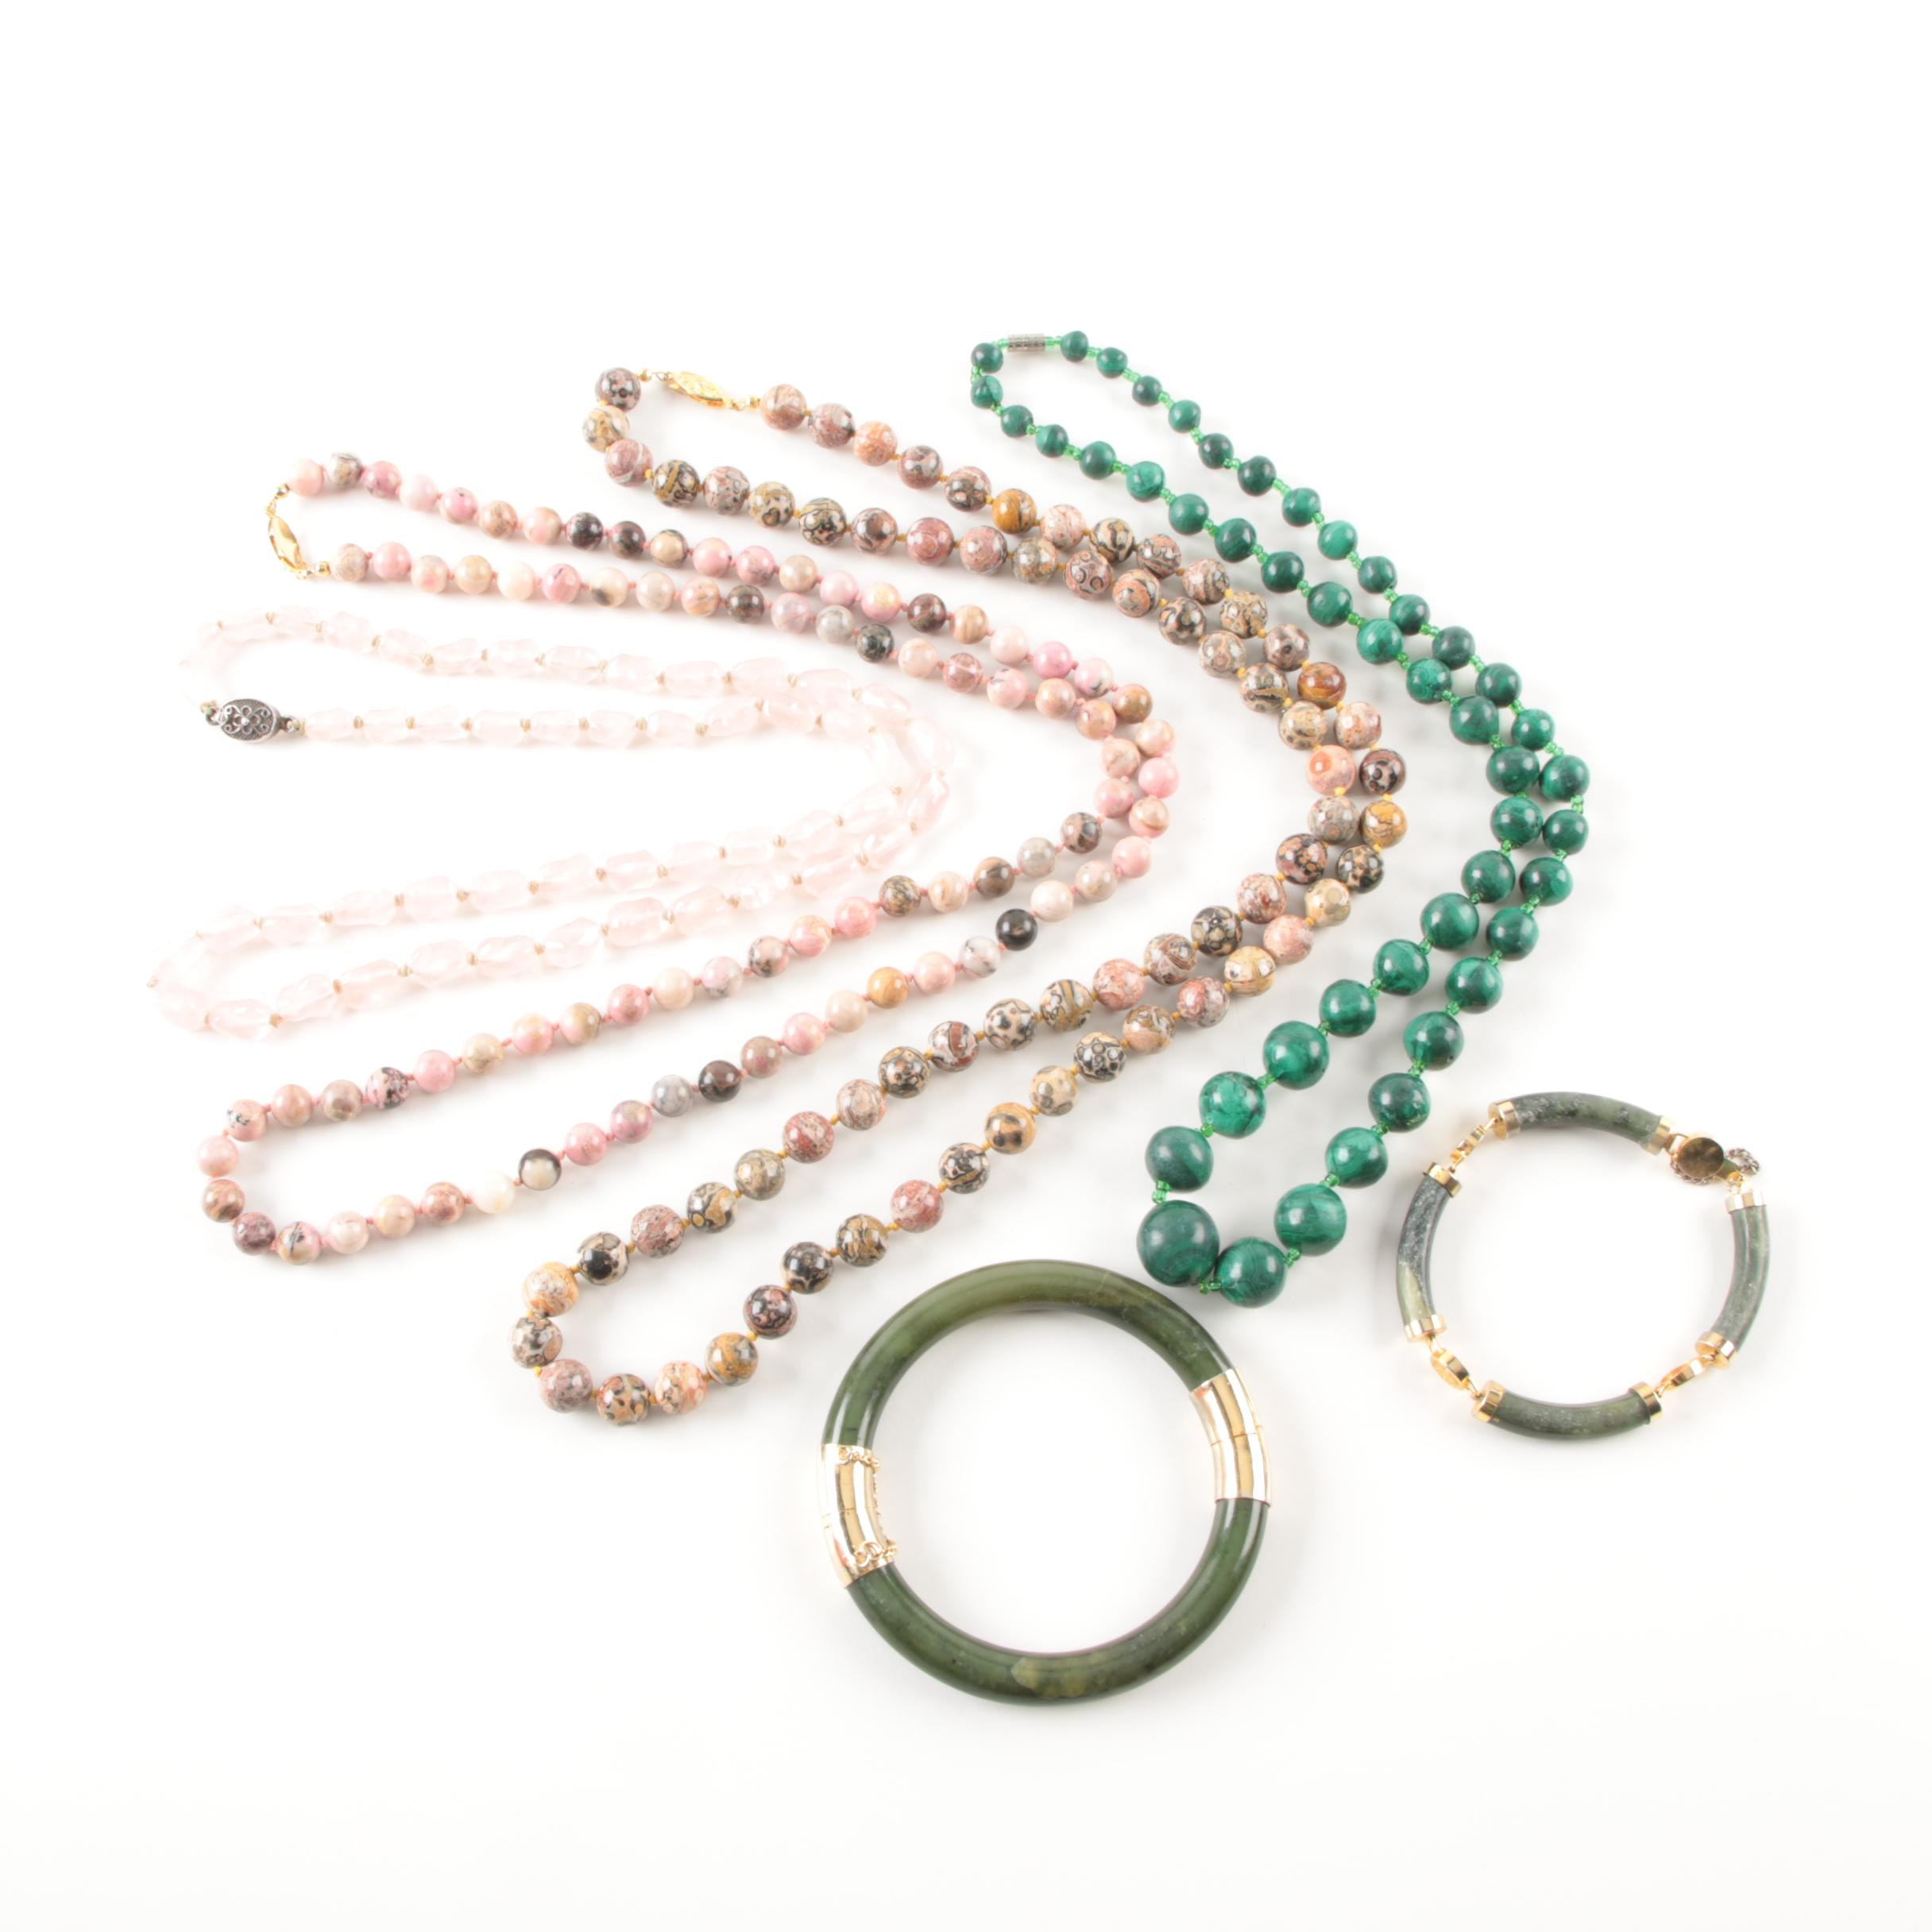 Jasper, Malachite, and Rose Quartz Jewelry Selection Including Sterling Silver